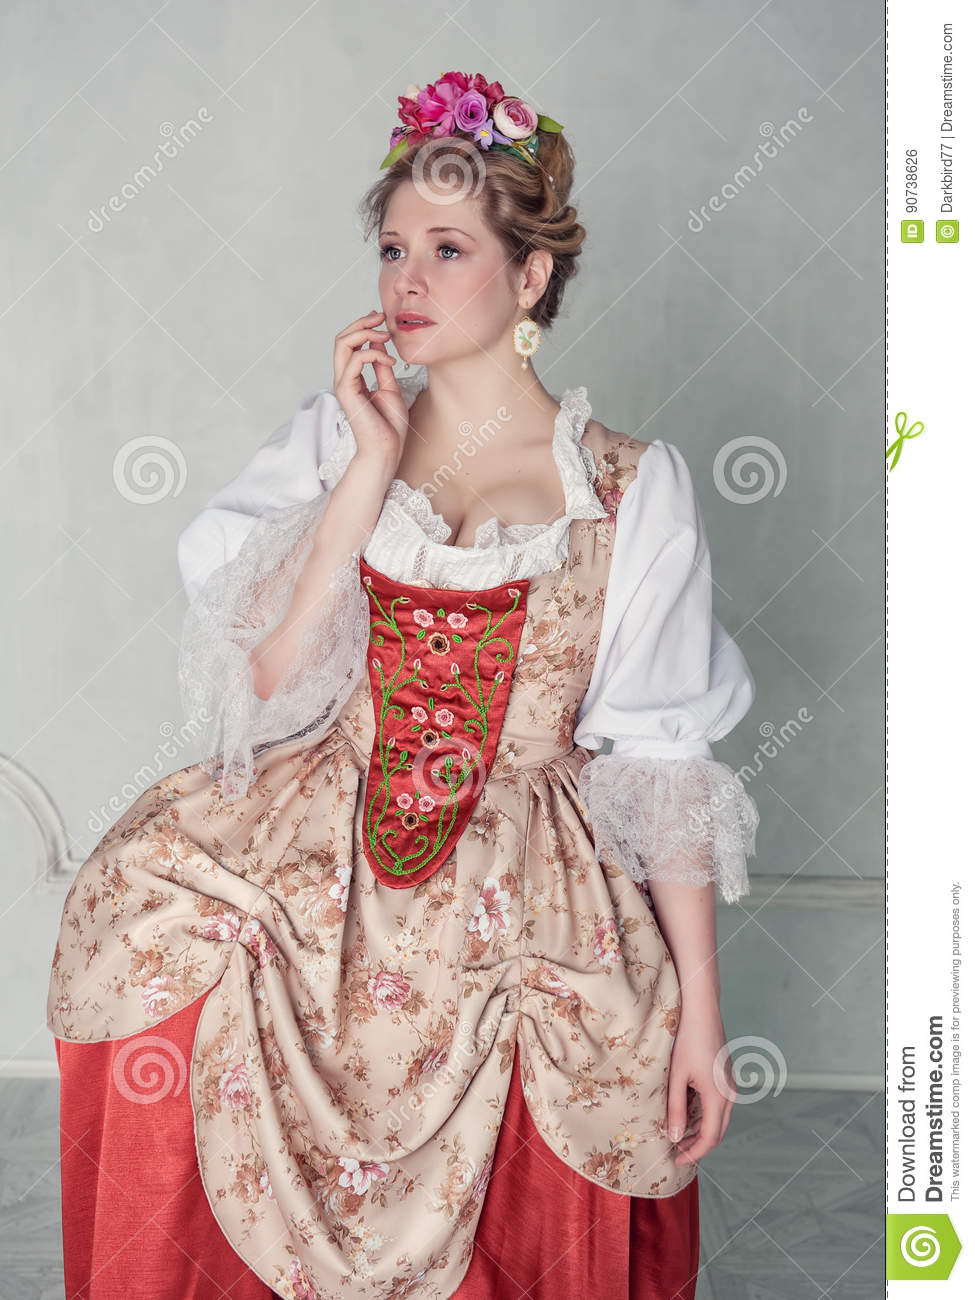 45d88294b7 Sad Beautiful Woman In Old-fashioned Medieval Dress Stock Photo ...